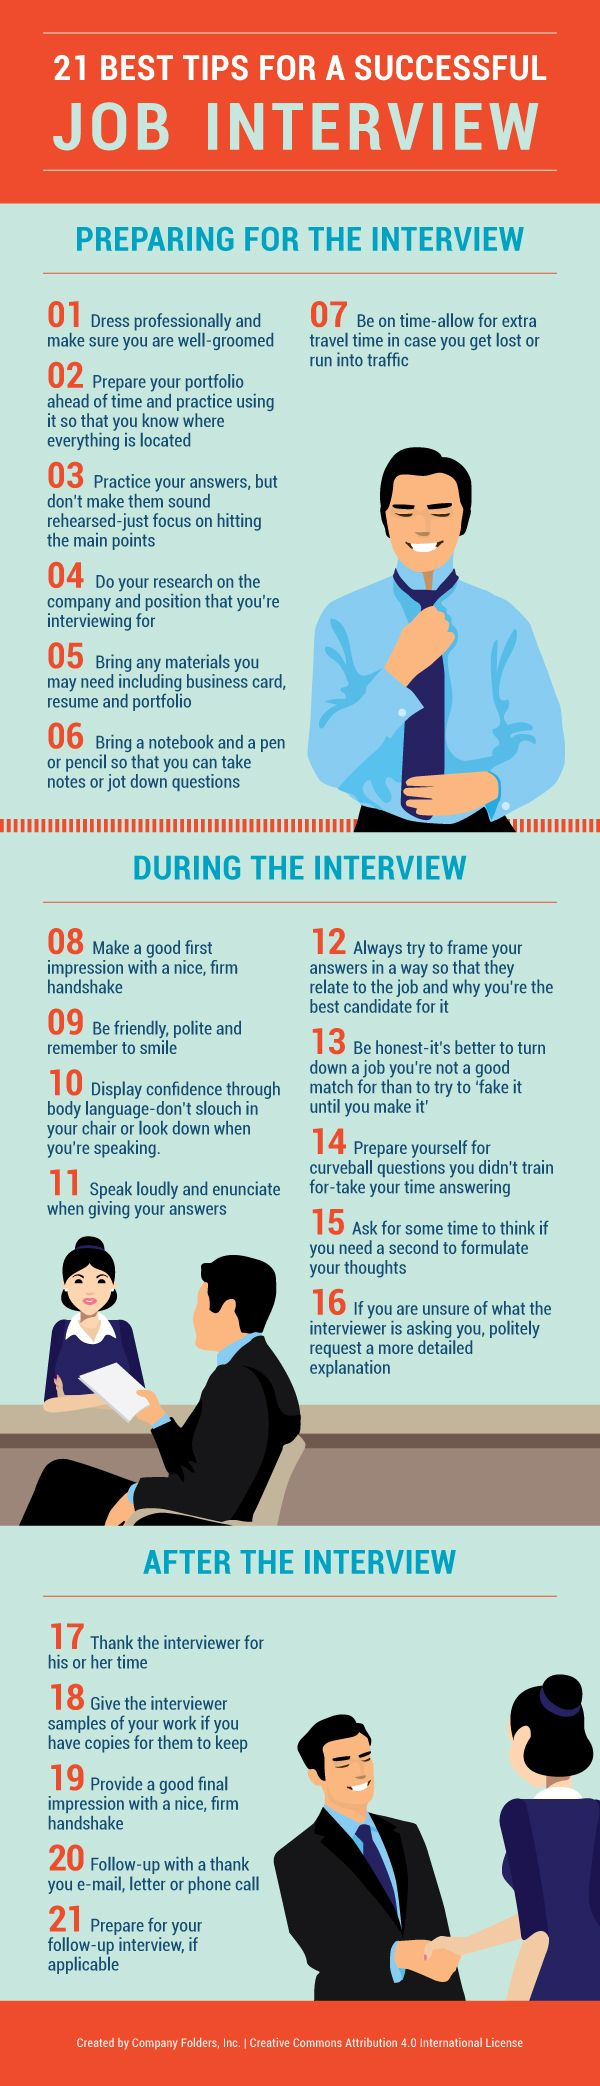 this infographic gives the 21 best tips for a successful job